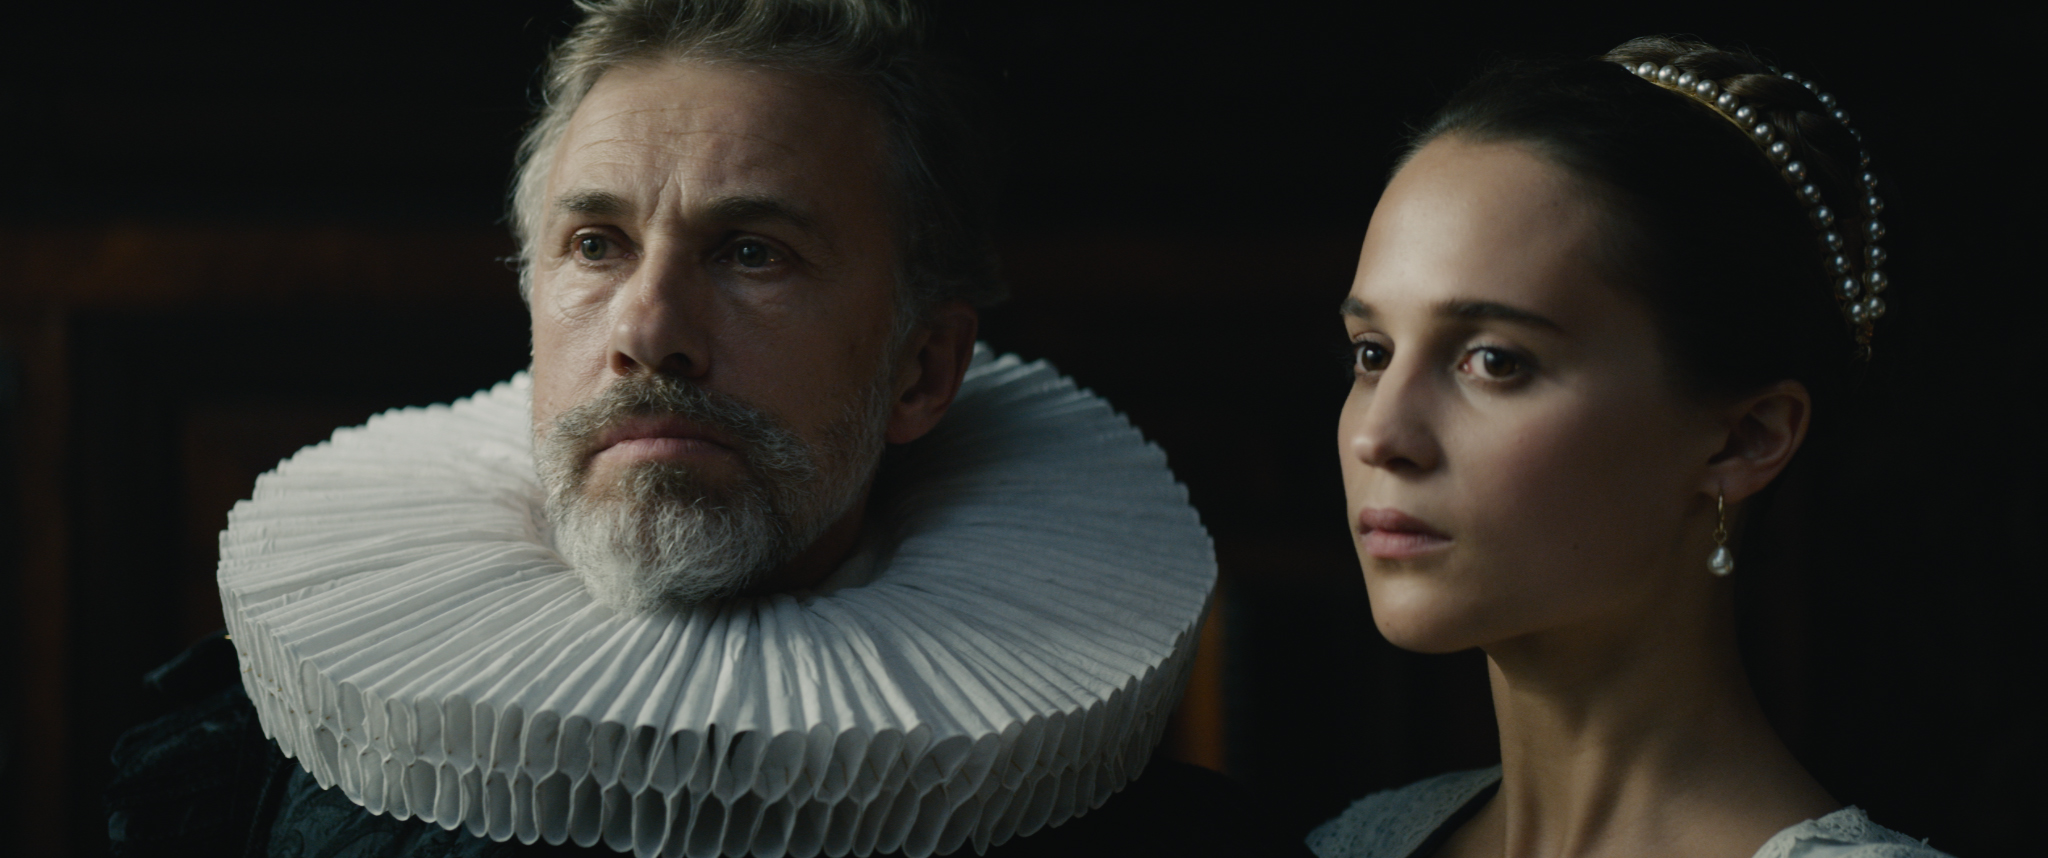 Sophia (Alicia Vikander) falls for a young artist whom her husband, Cornelis Sandvoort (Christoph Waltz), commissions to paint her portrait in the feature Tulip Fever, shot by cinematographer Eigil Bryld.